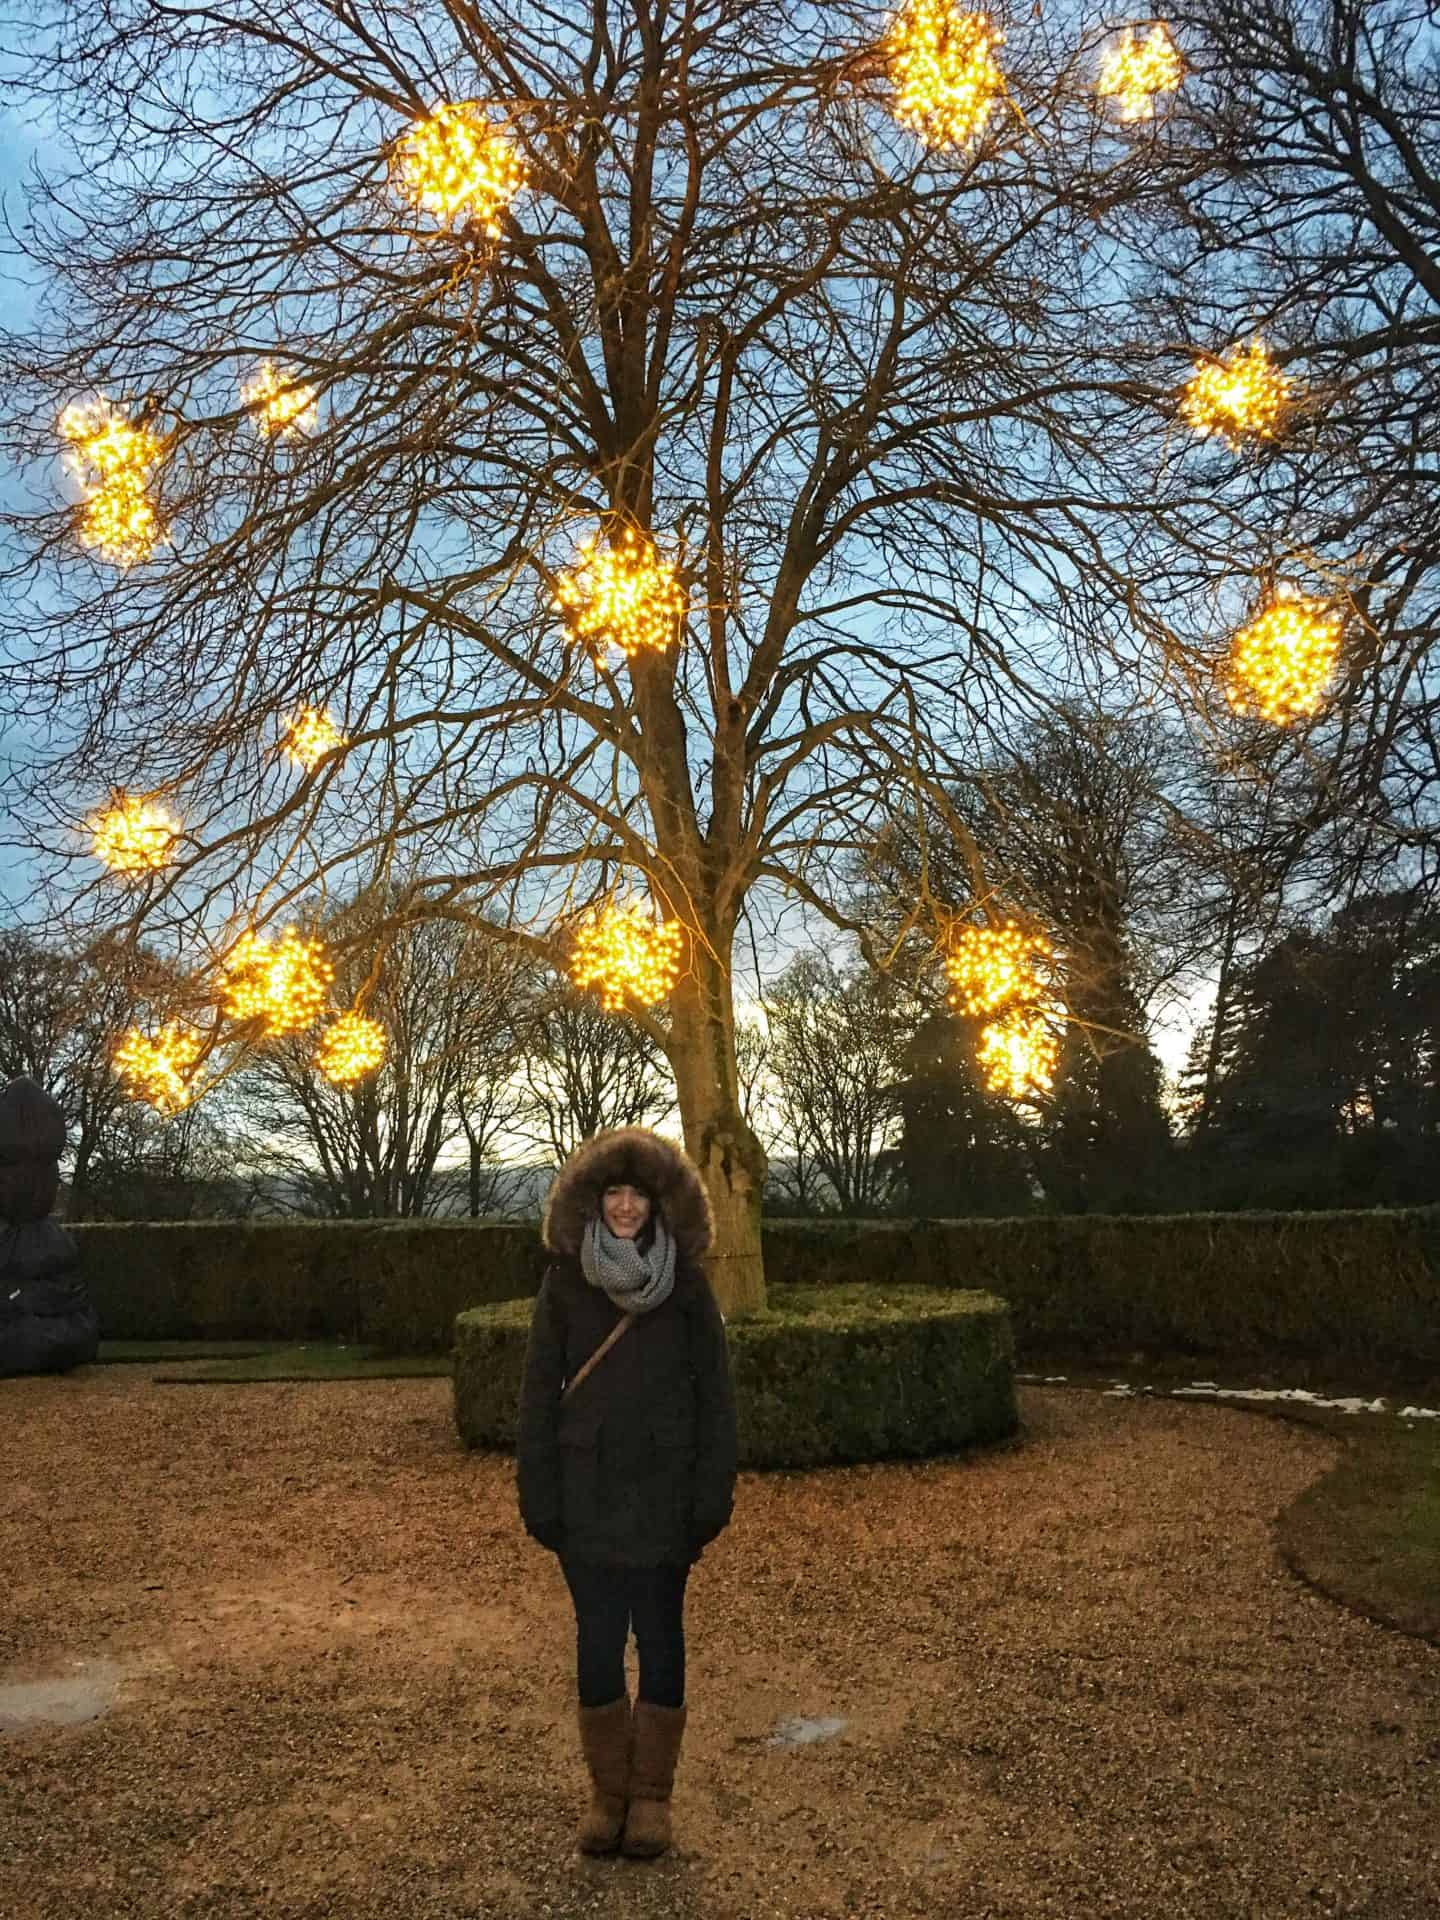 Standing outside Waddesdon Manor at Christmas